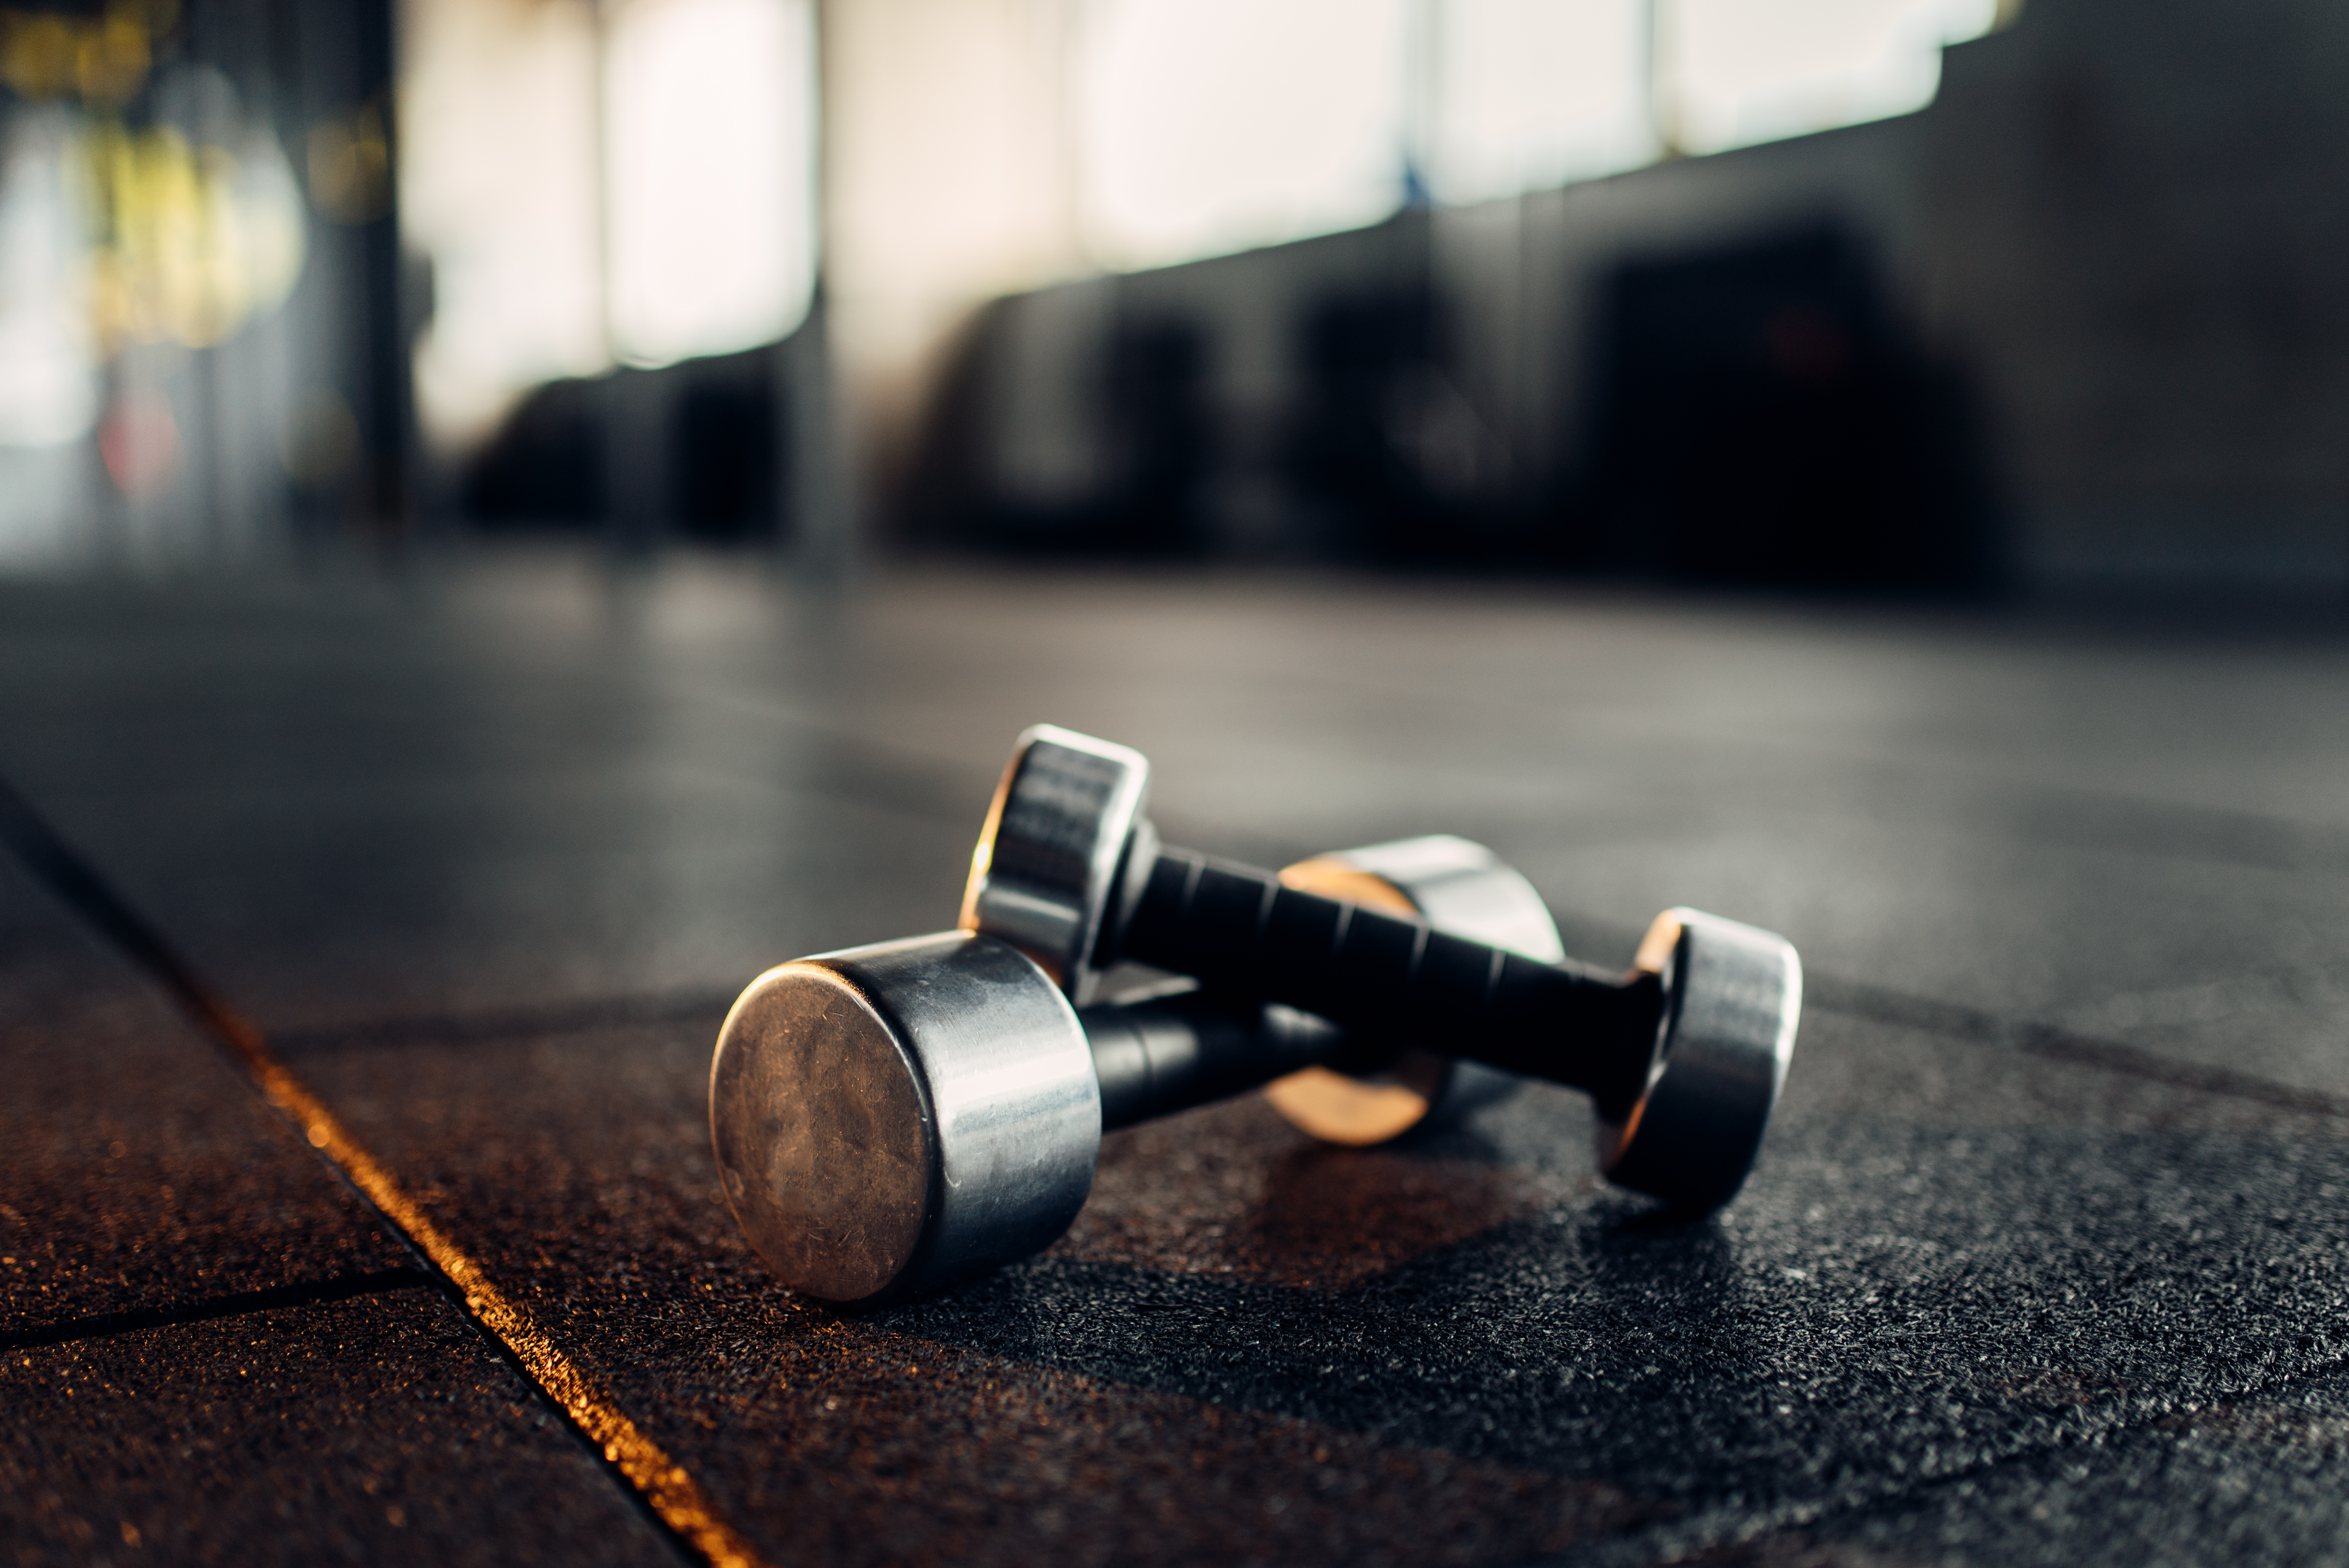 How should I train at the gym?